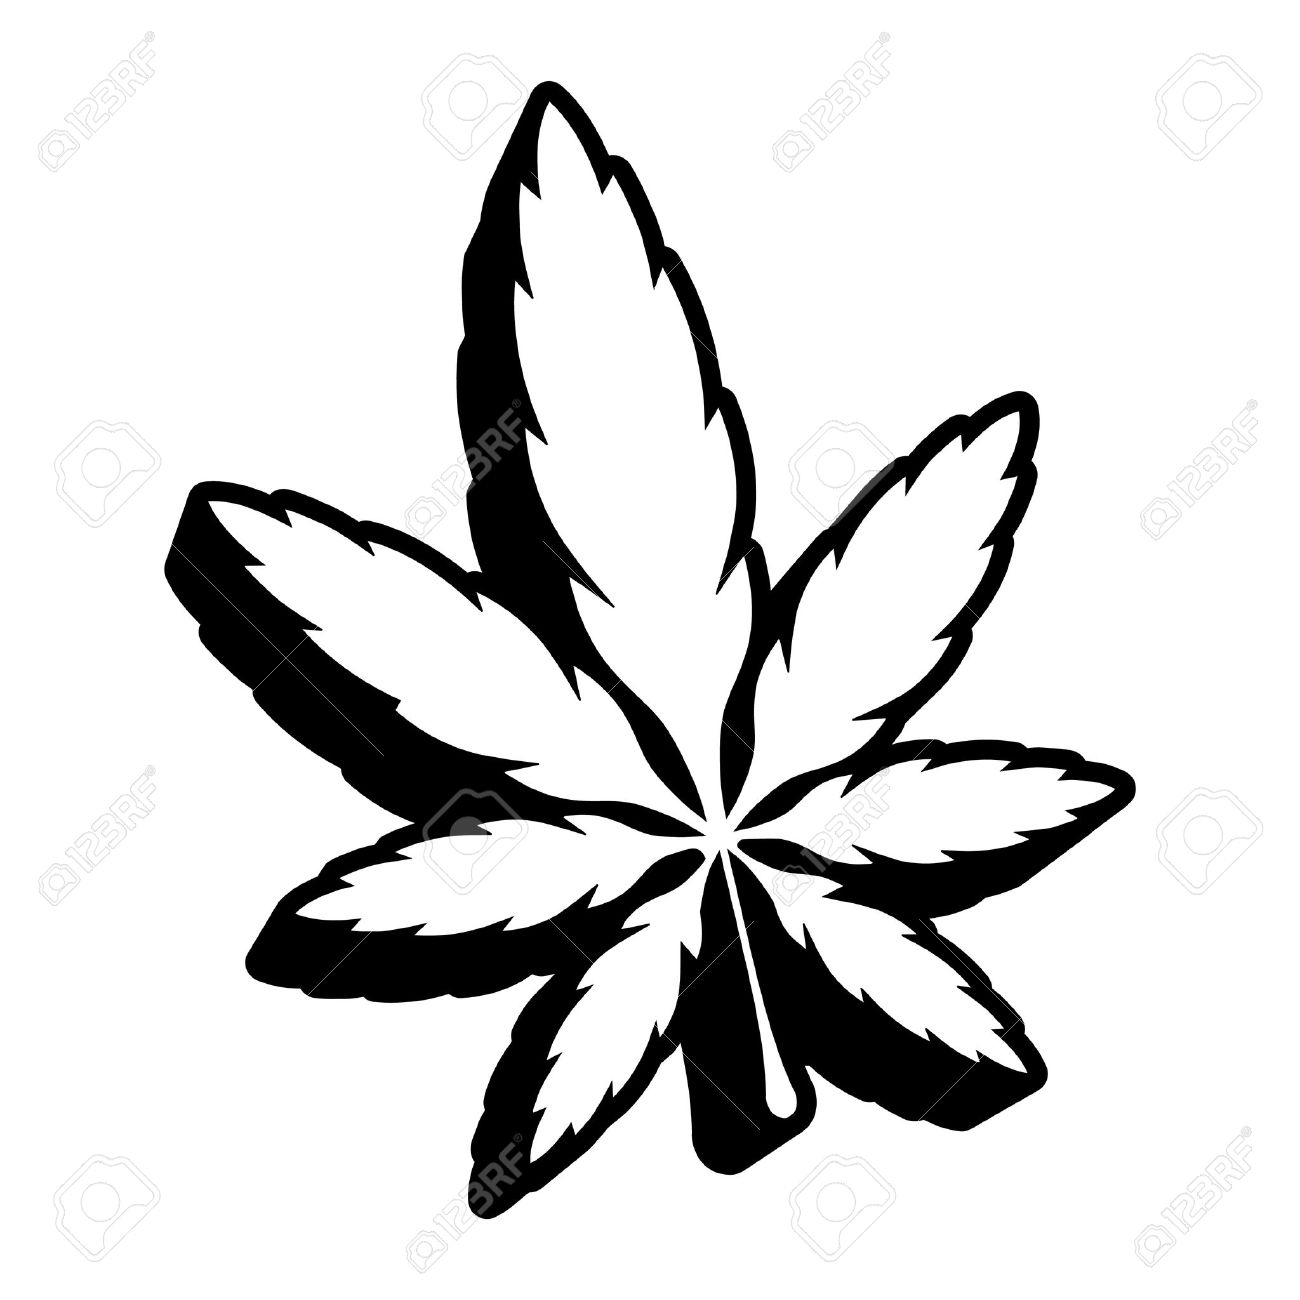 Weed Stock Photos Royalty Free Weed Images